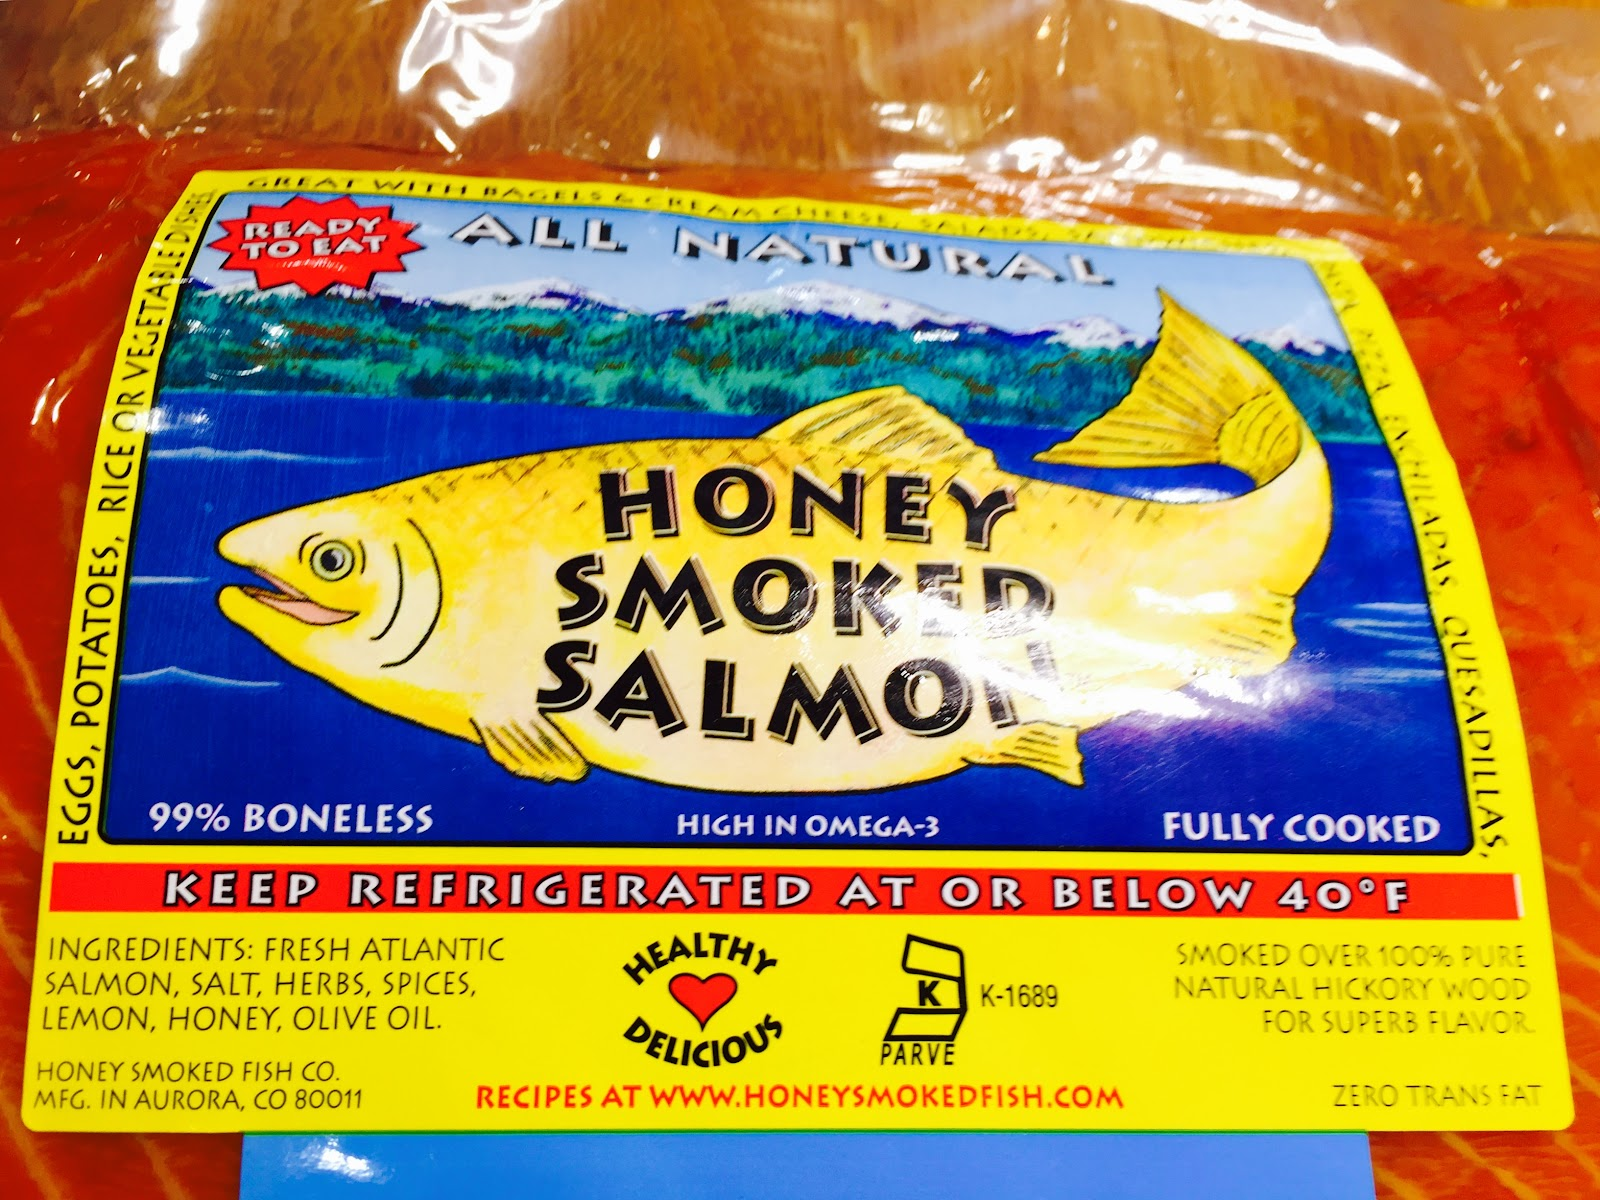 Phoodographs and finds our phabulous phood phinds at the for Honey smoked fish